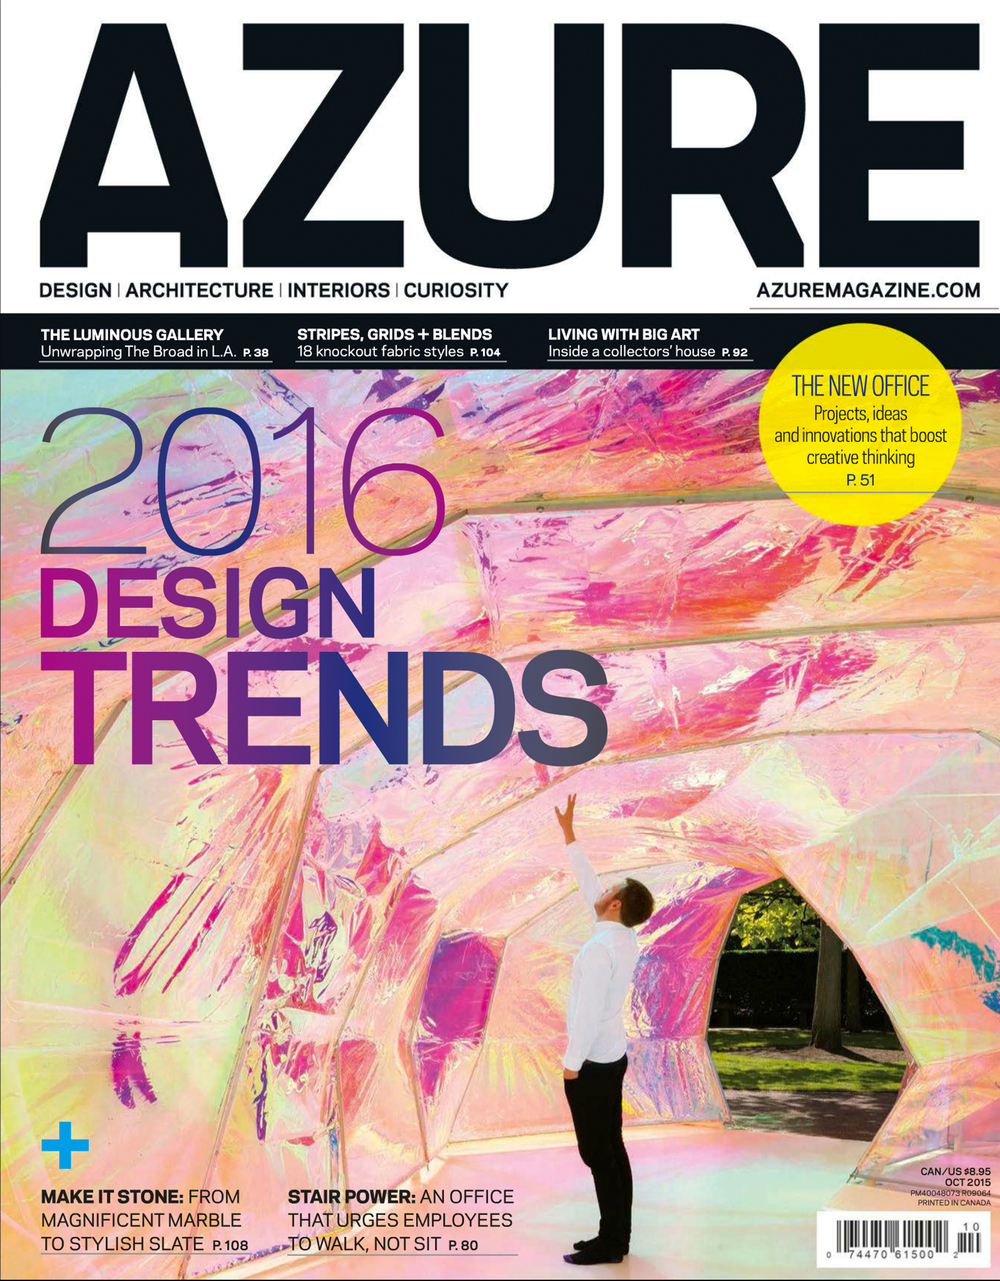 AZURE - OCTOBER 2015 - COVER .jpg